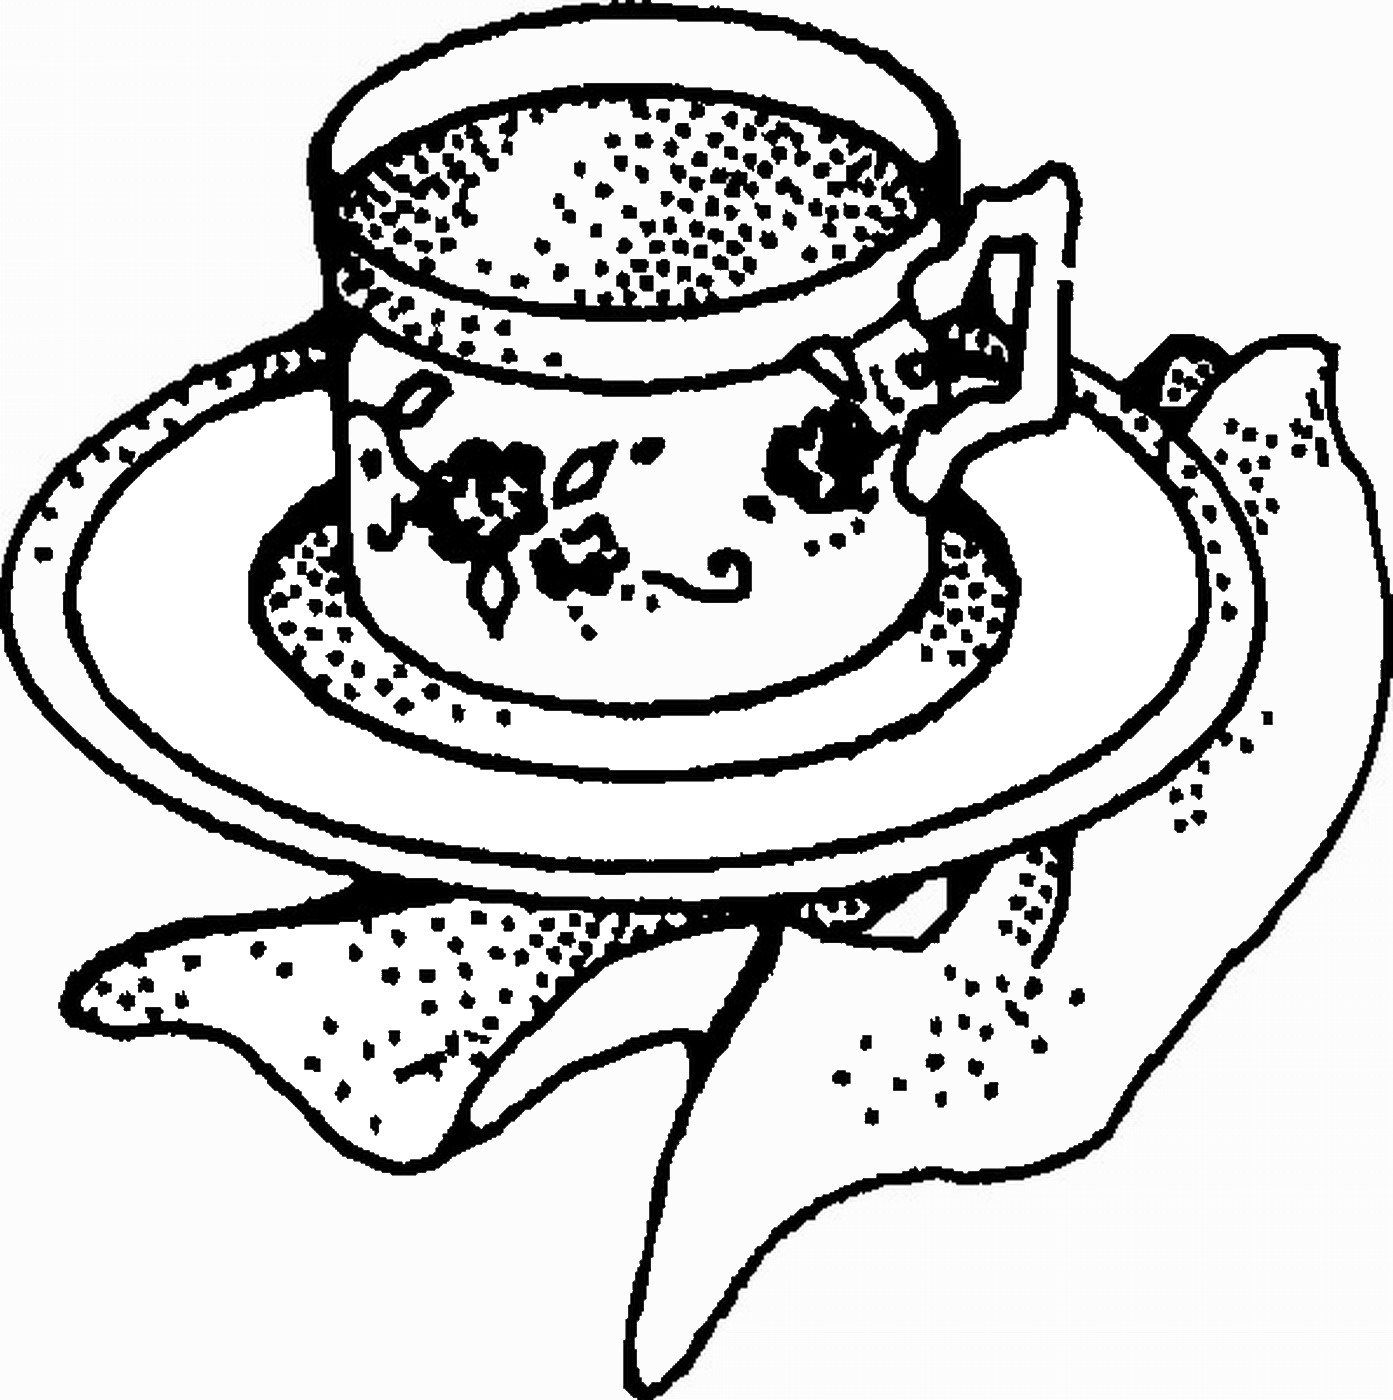 tea party colouring pages tea party coloring pages to download and print for free tea pages party colouring 1 1